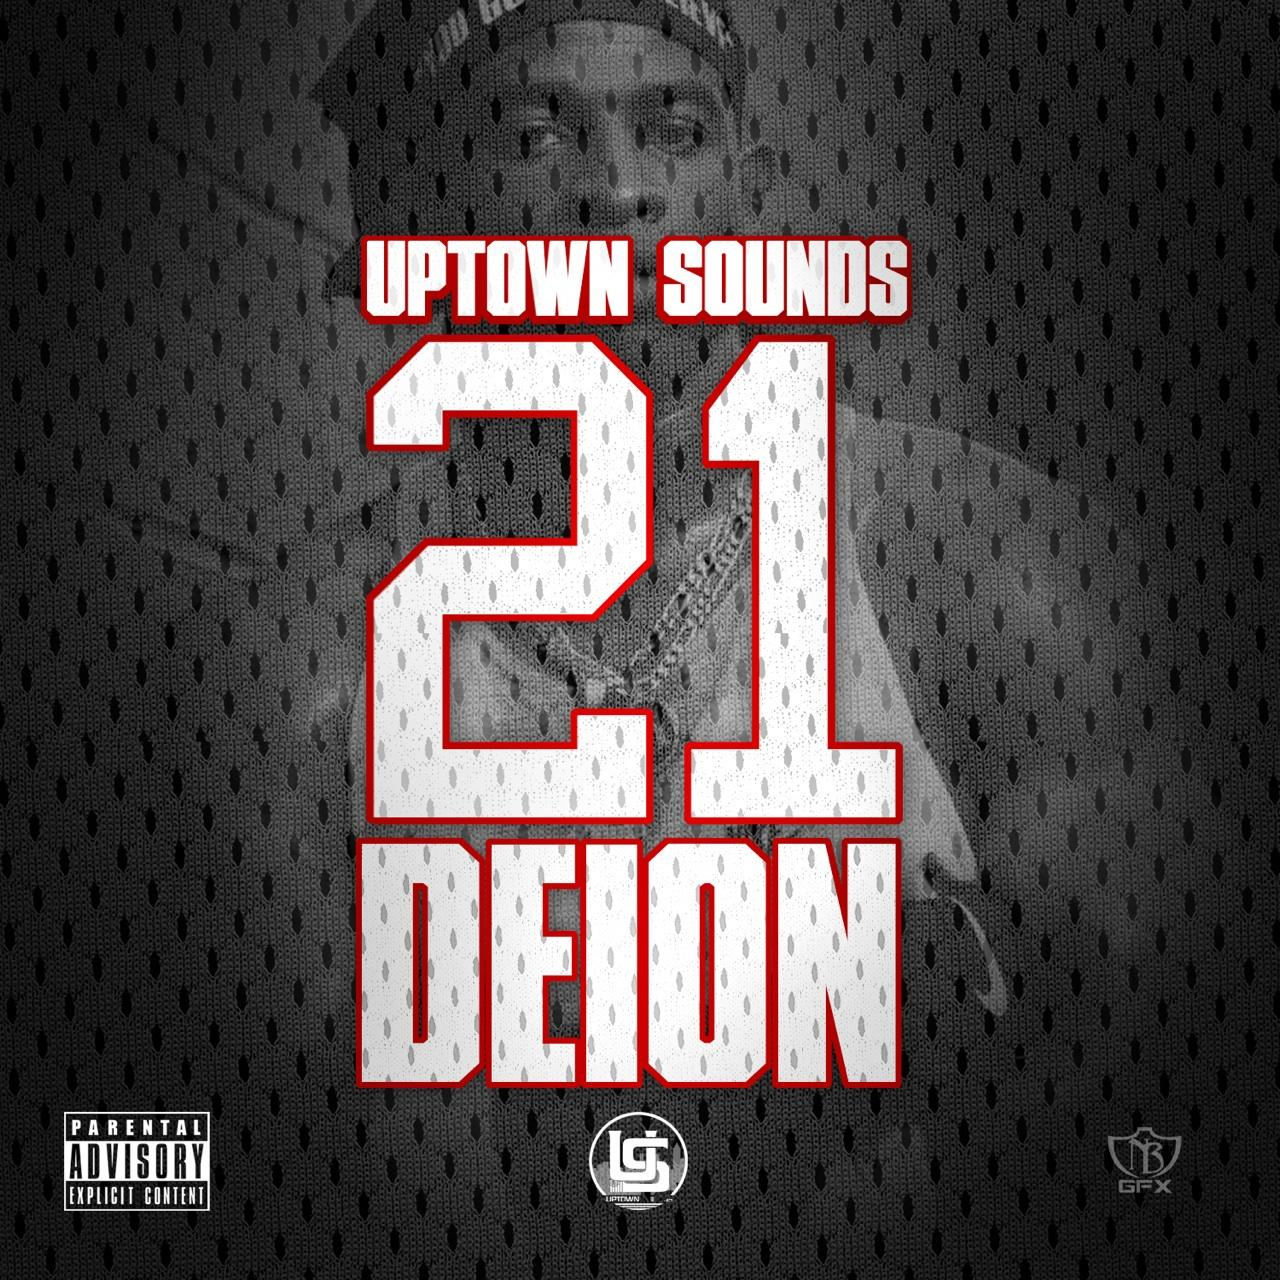 uptown-sounds-deion-HHS1987-2013-Lou-Will Uptown Sounds - Deion